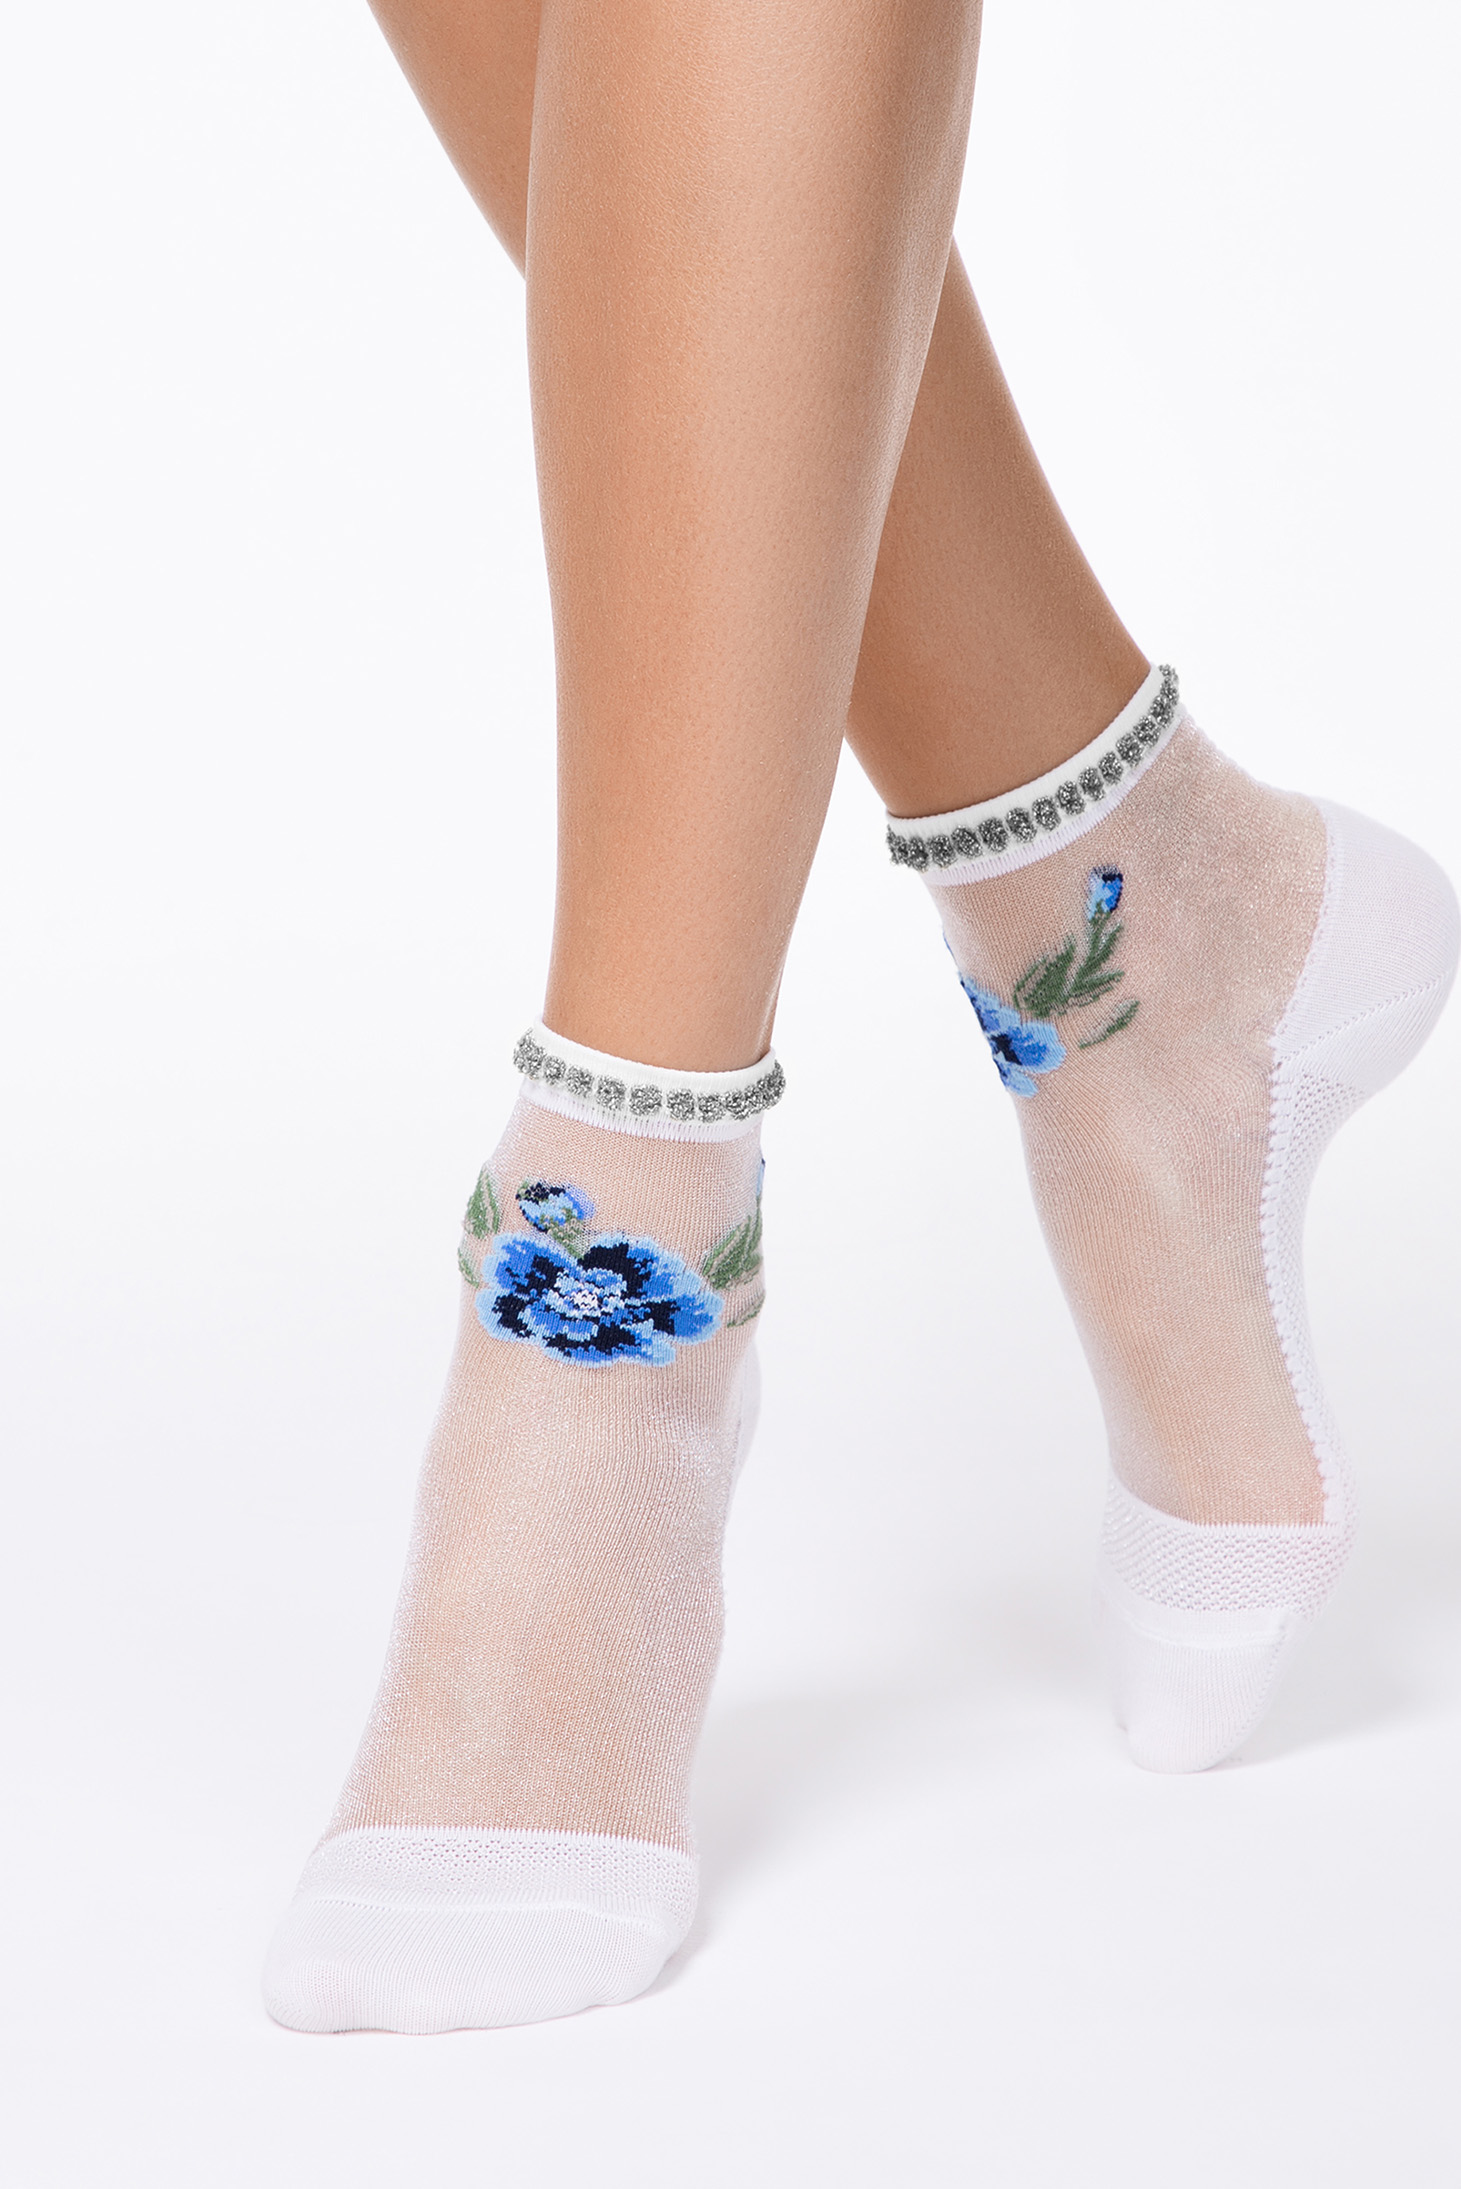 Blue tights & socks transparent fabric fitted heel with floral print